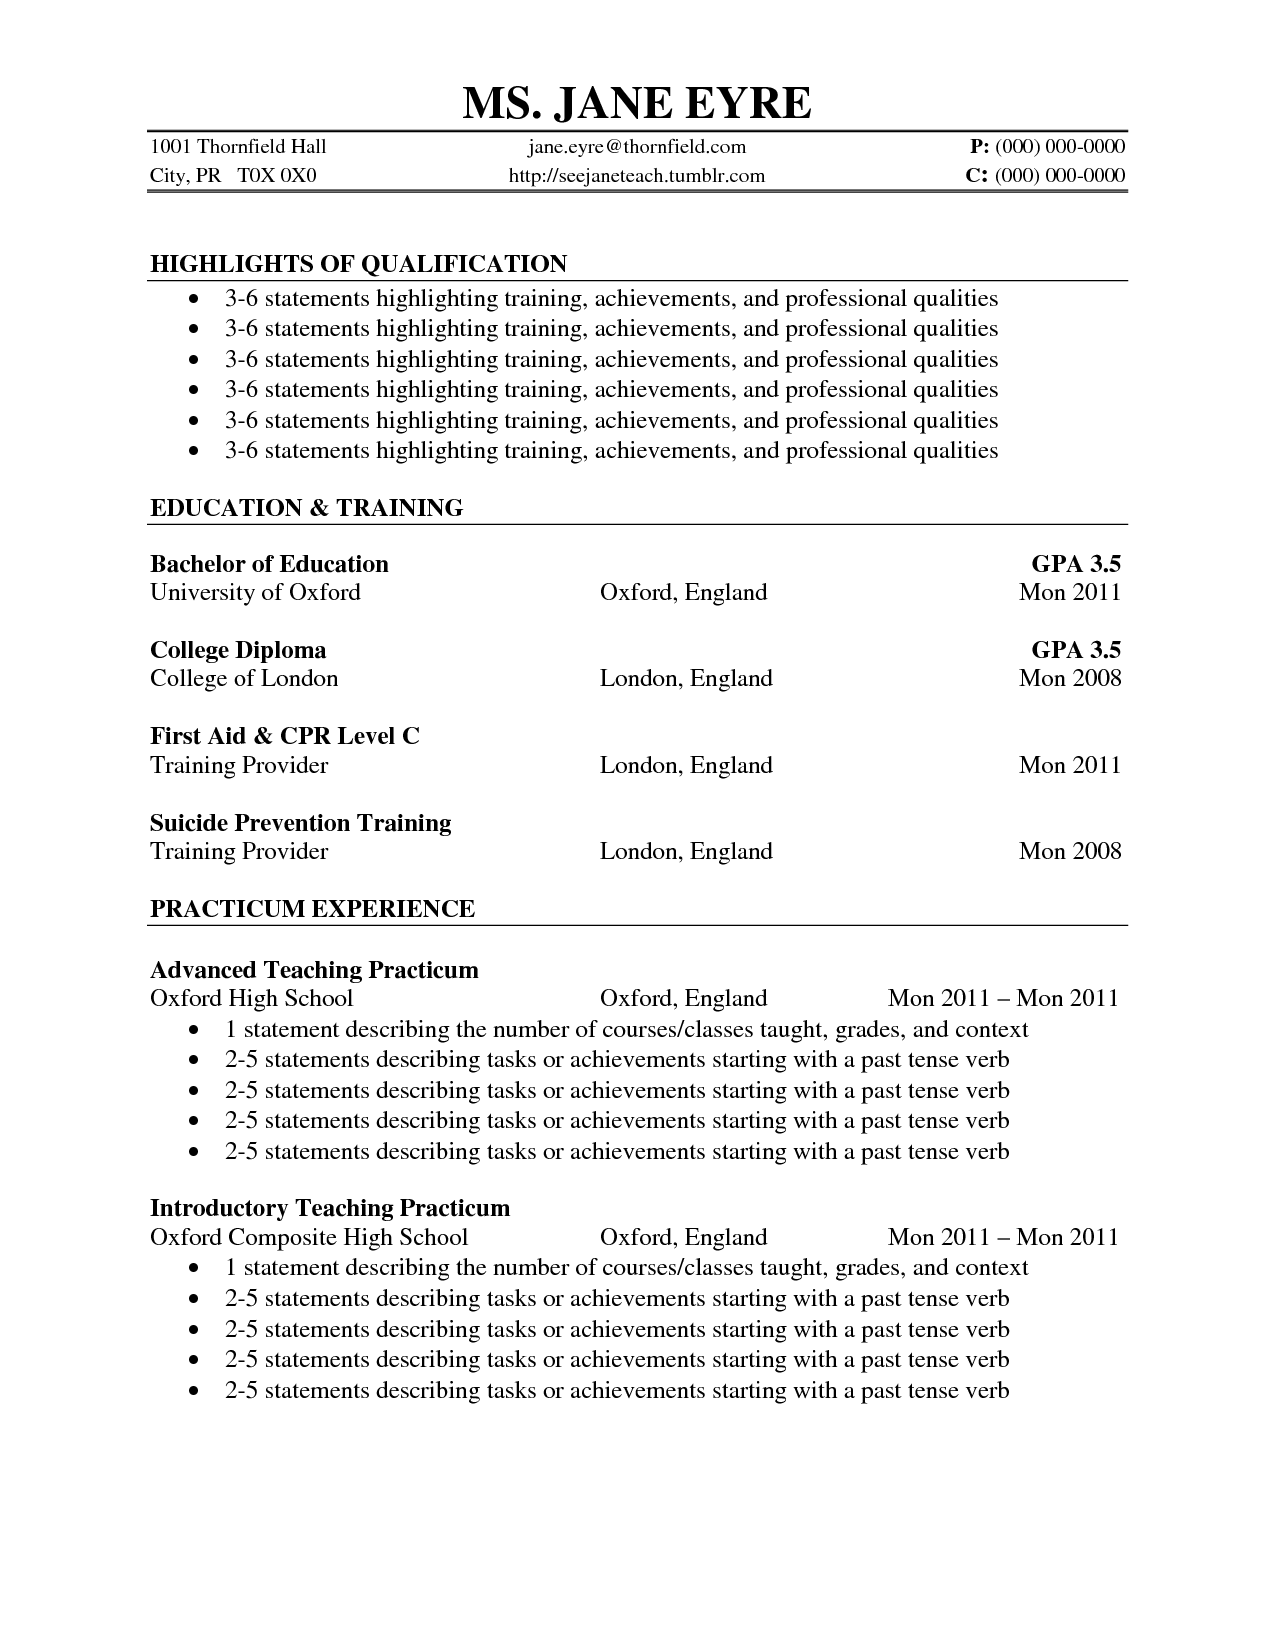 cv template volunteer work custovolunteer work on resume application letter sample - Resume And Cv Format